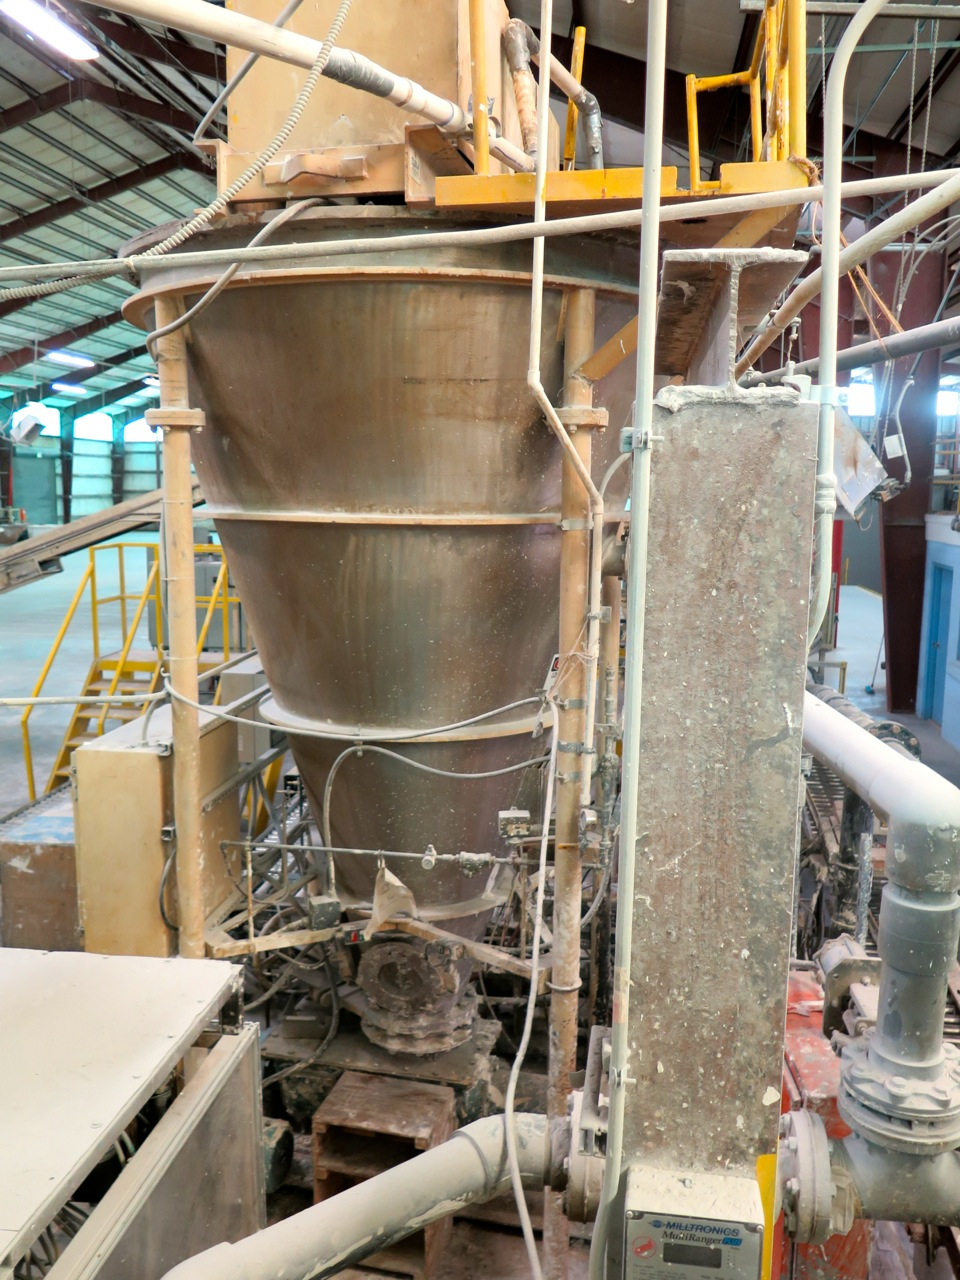 used 76 Cu.Ft. (2,150 L/560 gal) JH Day Stainless Steel, Full Vacuum Rated Nauta Mixer system/Conical mixer. Model MK 2 FB-76. 304 Stainless Steel. Has 20 HP, 230/460 volt, 1800 rpm drive for orbital arm with 3 RPM output and 3 HP, 230/460 volt motor for screw with 120 RPM output.  Approx. 12'4